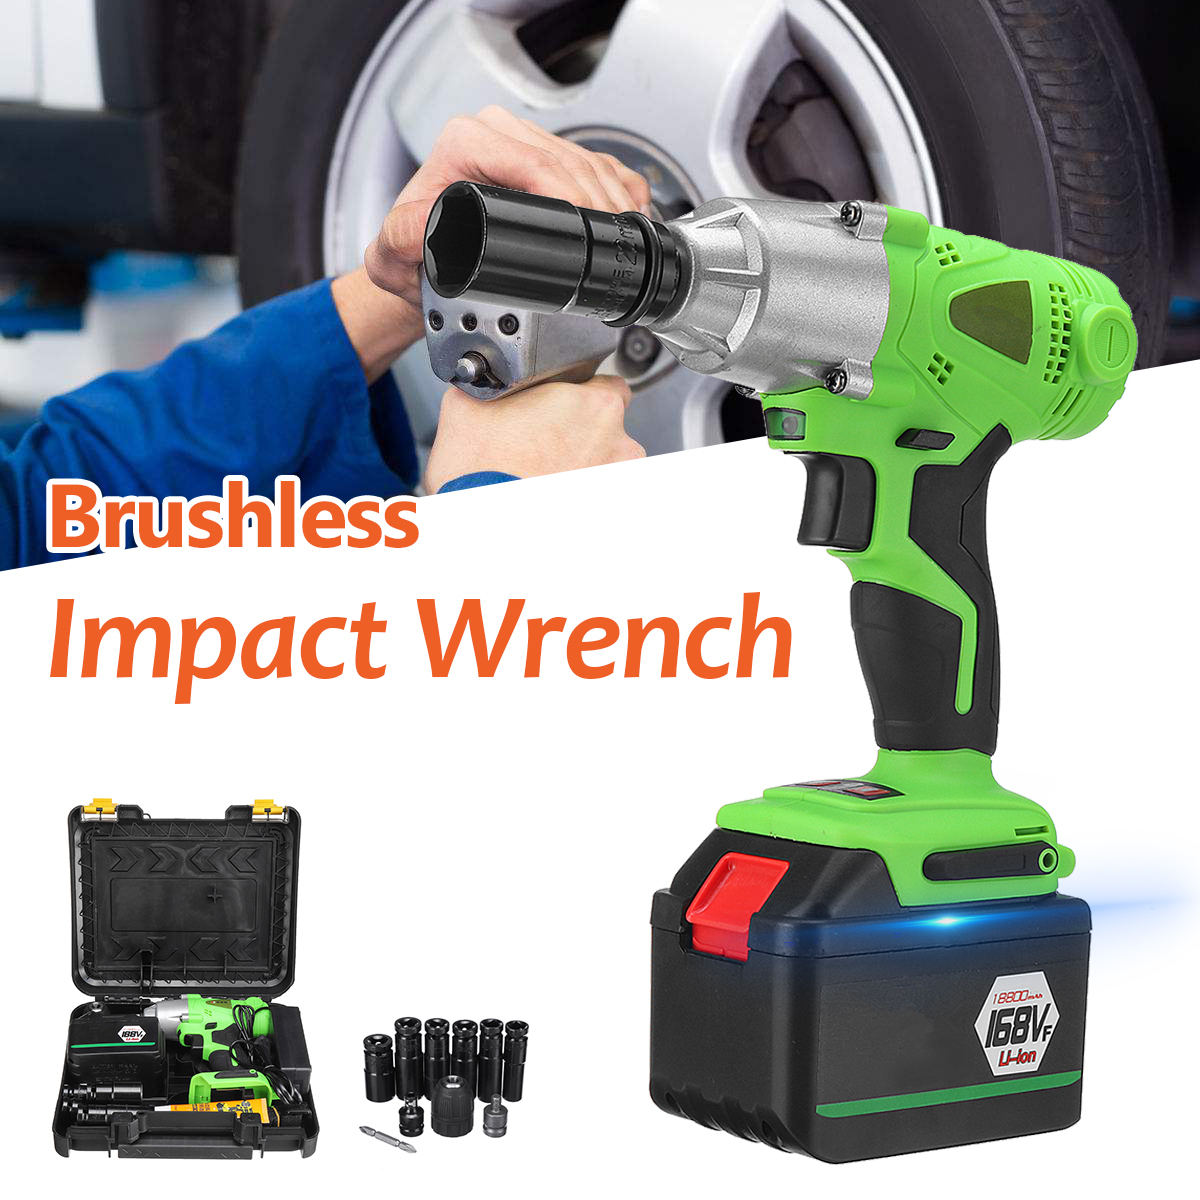 98/128/168/188V 2500RPM Brushless Cordless Electric Drill Rechargeable Electric Impact Wrench Home Repair Power Tool electric impact wrench 98 128 168 188vf electric brushless li ion battery wrench 10mm chuk with box cordless speed control power